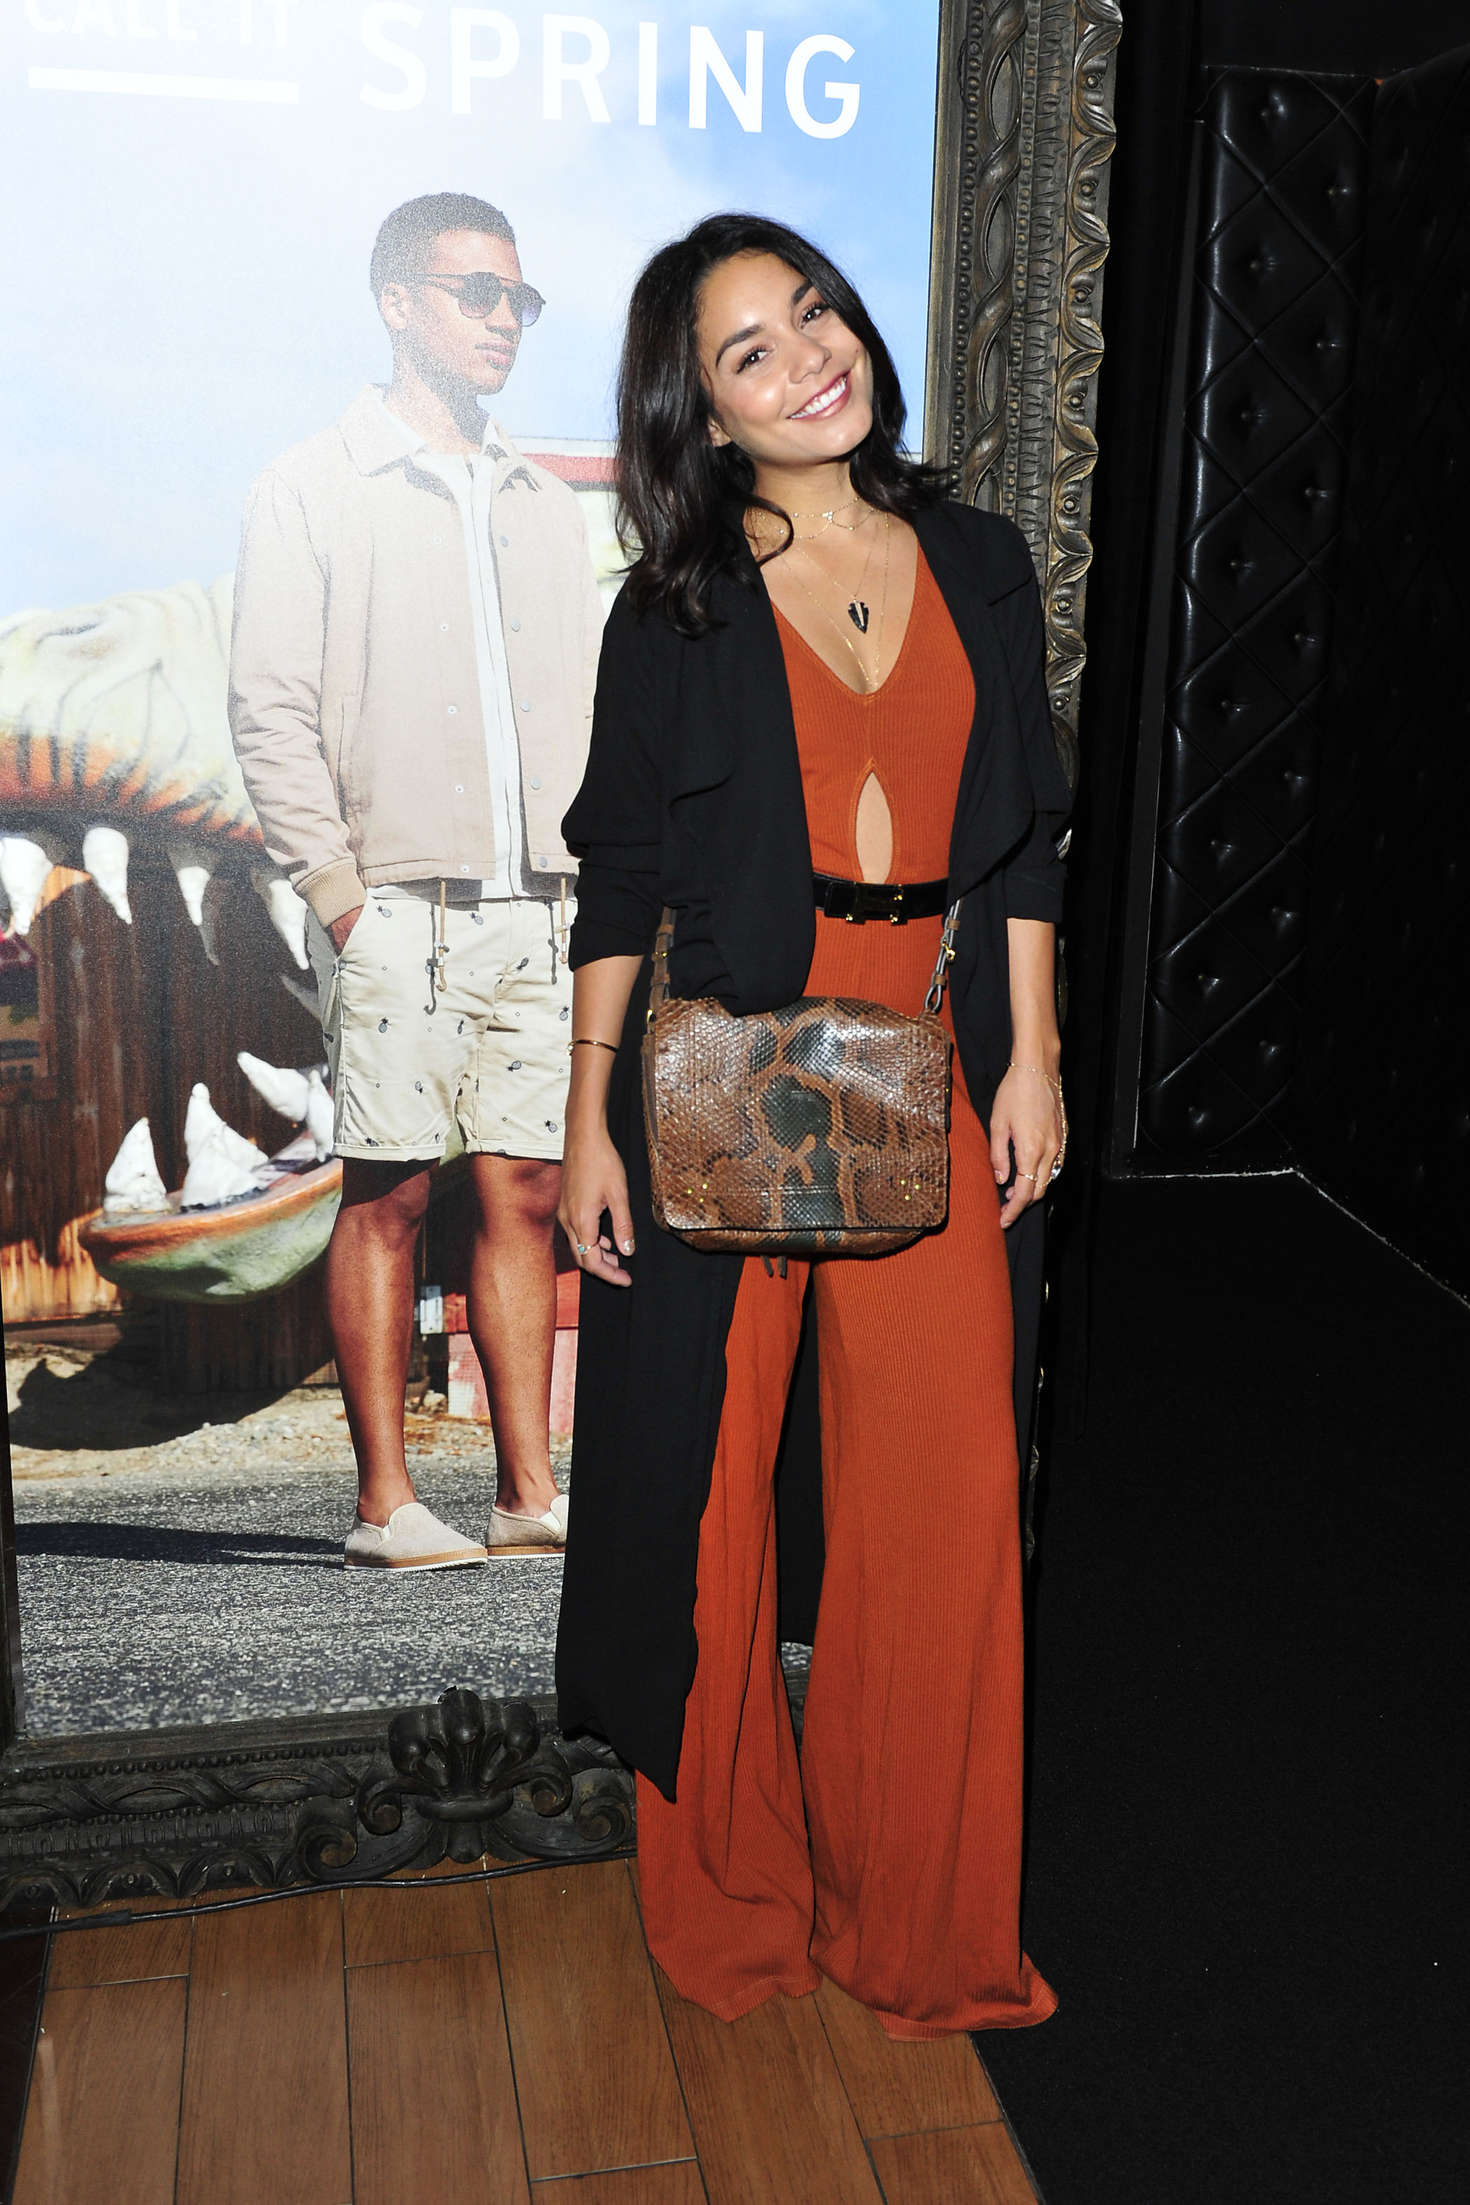 Vanessa Hudgens - Call It Spring Hosts Private Event at Selena Gomez Concert in Los Angeles